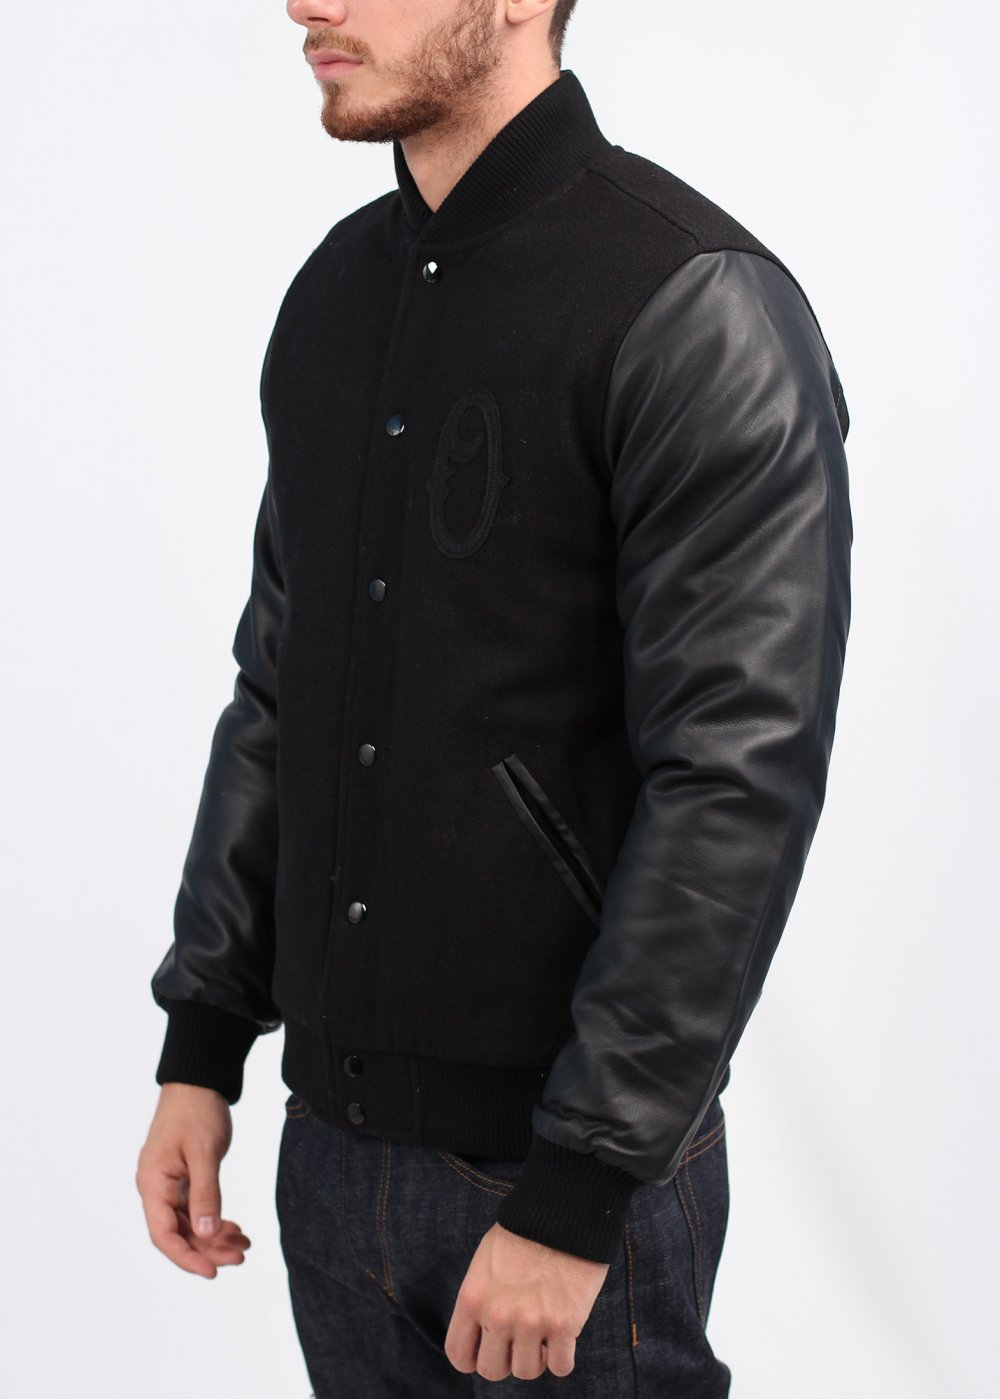 Home Mens Jackets Bomber Jackets. Bomber Jackets for Men (24 Results) Hide Menu Show Menu. Shop By Category. Black Multi Shop By Size S M L XL XXL Shop By Price $50 - $75 PacSun x Playboy Varsity Jacket $ PacSun Harrington Reversible Bomber Jacket $ More colors.